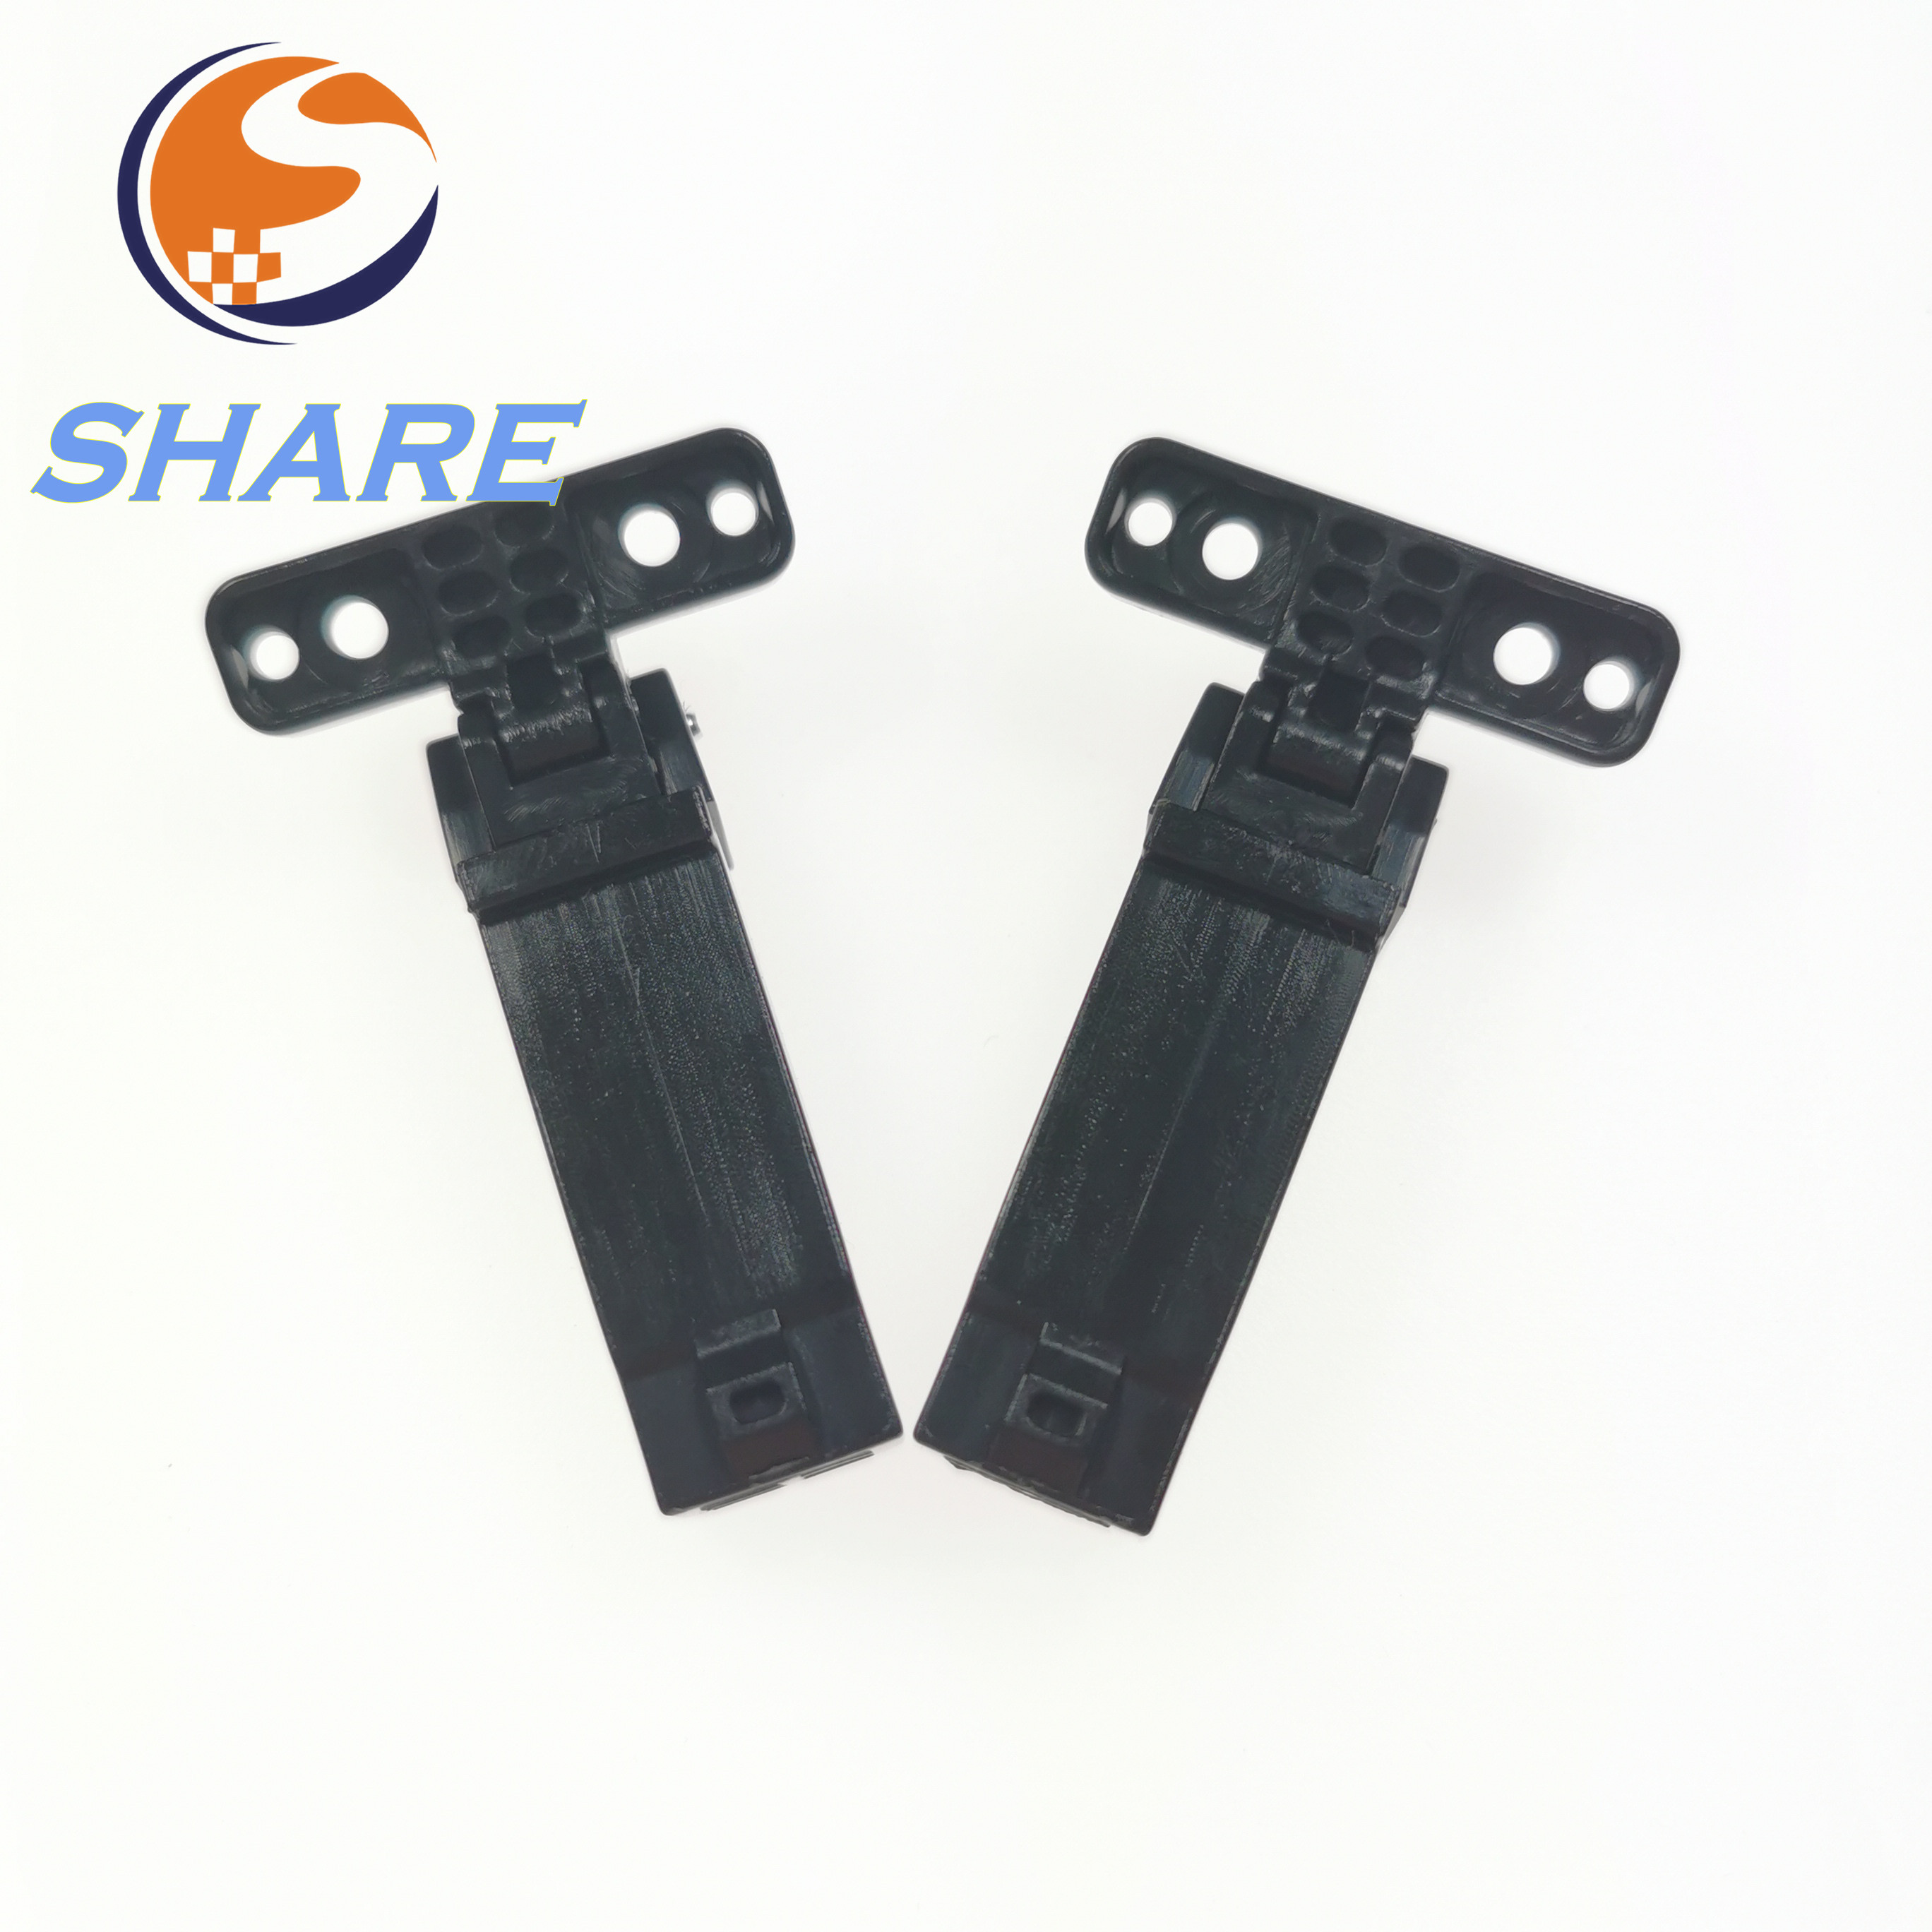 Share 1set ADF Mea Unit Hinge Assembly Used For Samsung CLX3170 3175 3185 4175 3305 6260 SCX3400 3401 3405 3406 4600 4601 4623